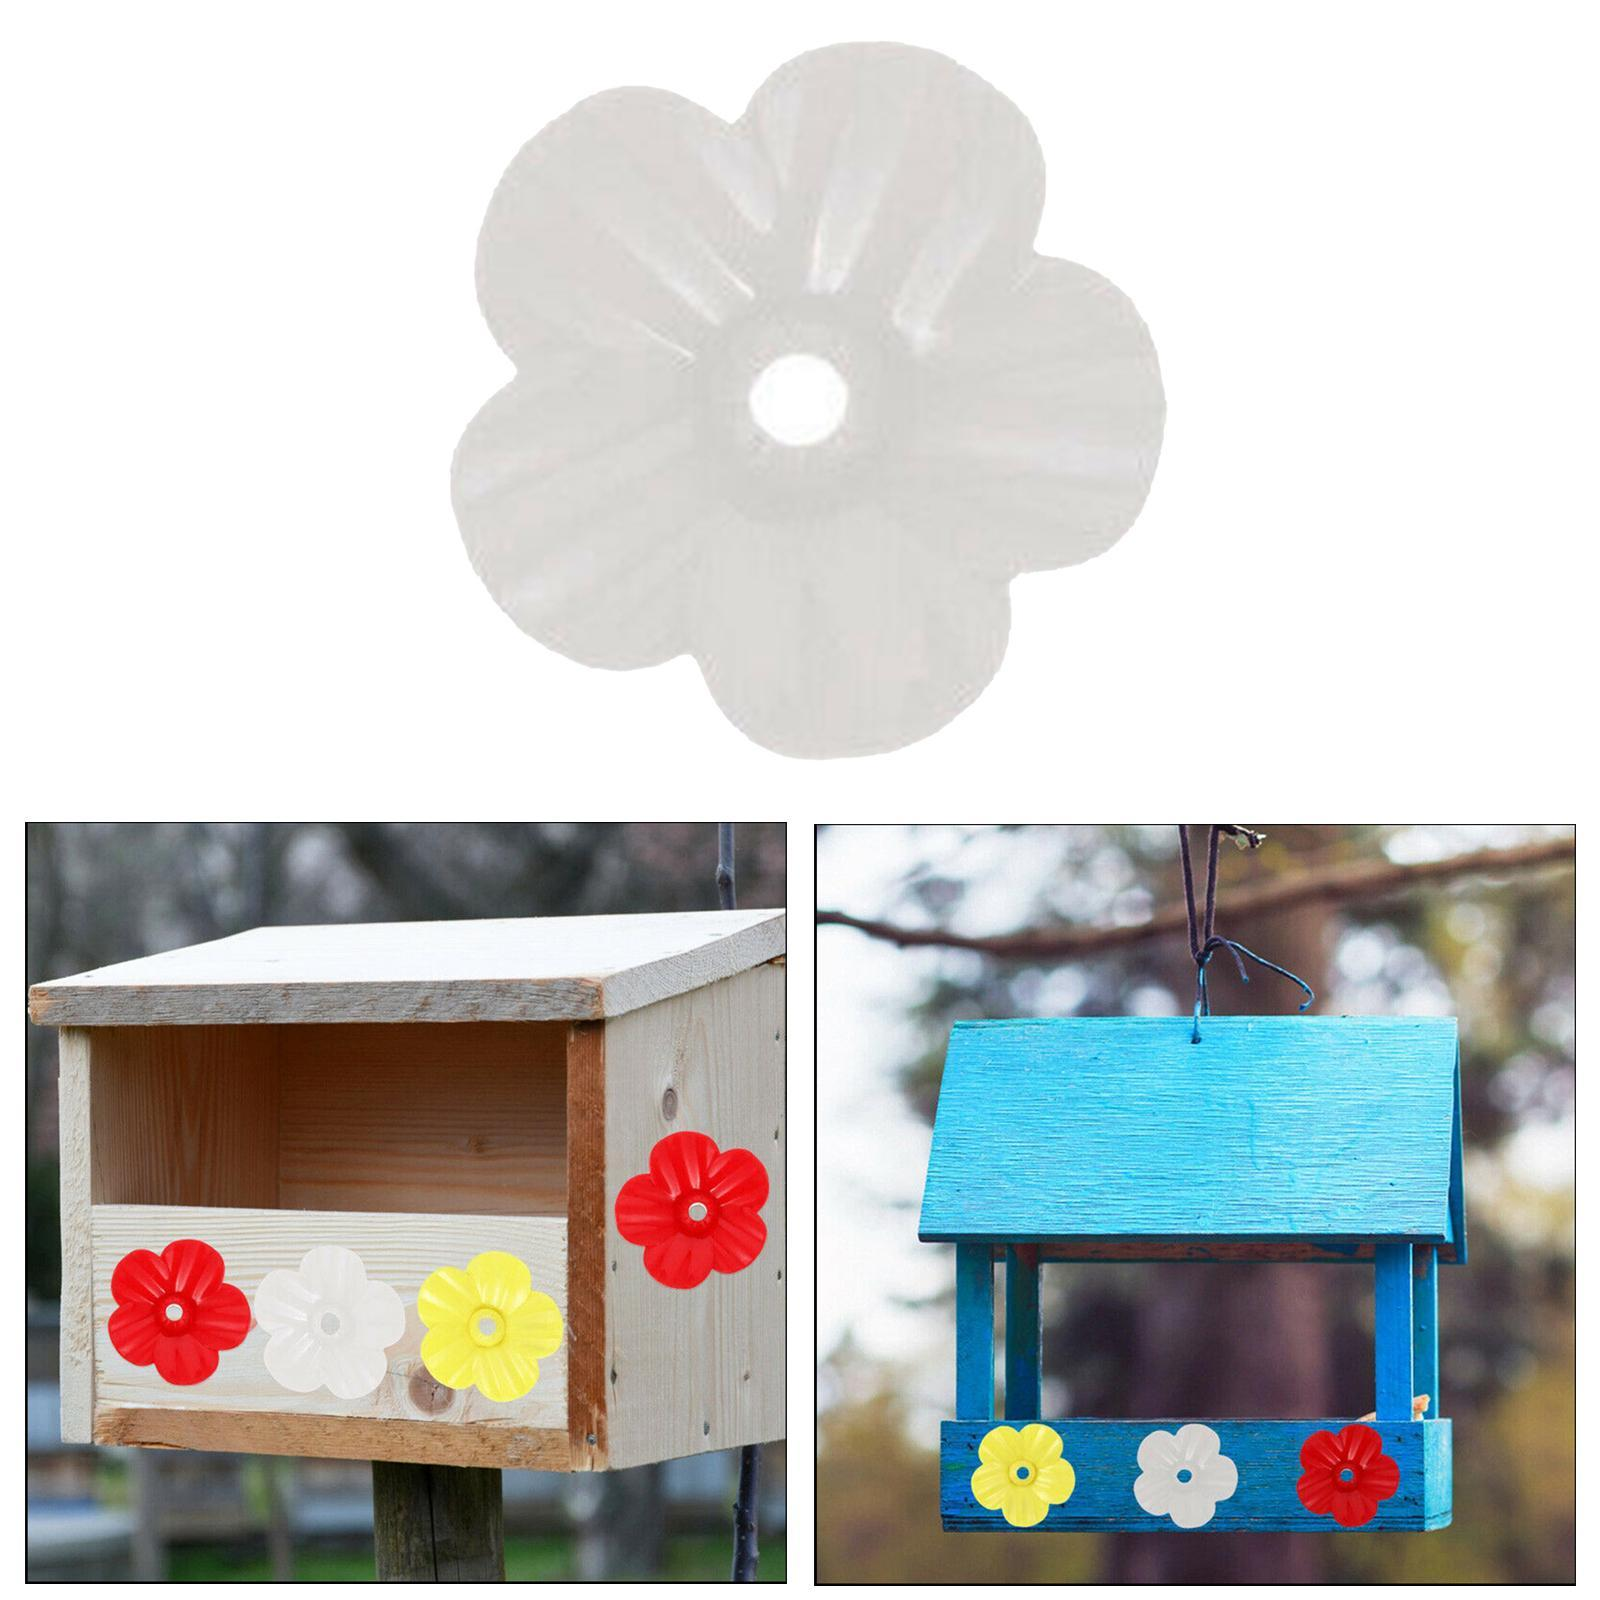 thumbnail 10 - Hanging hummingbird feeder replacement flower, feeding port, parts used supplies